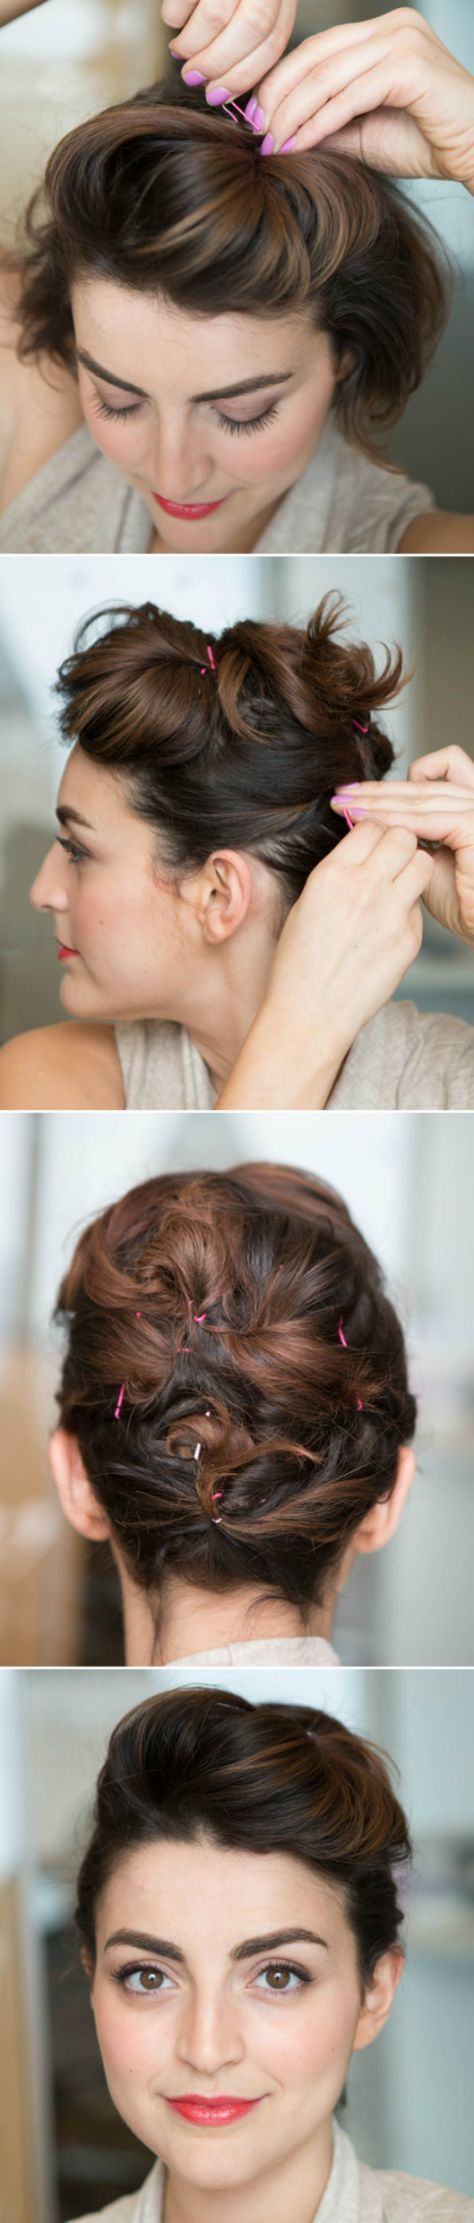 Short hair needs love too lol makeuphairstyles pinterest